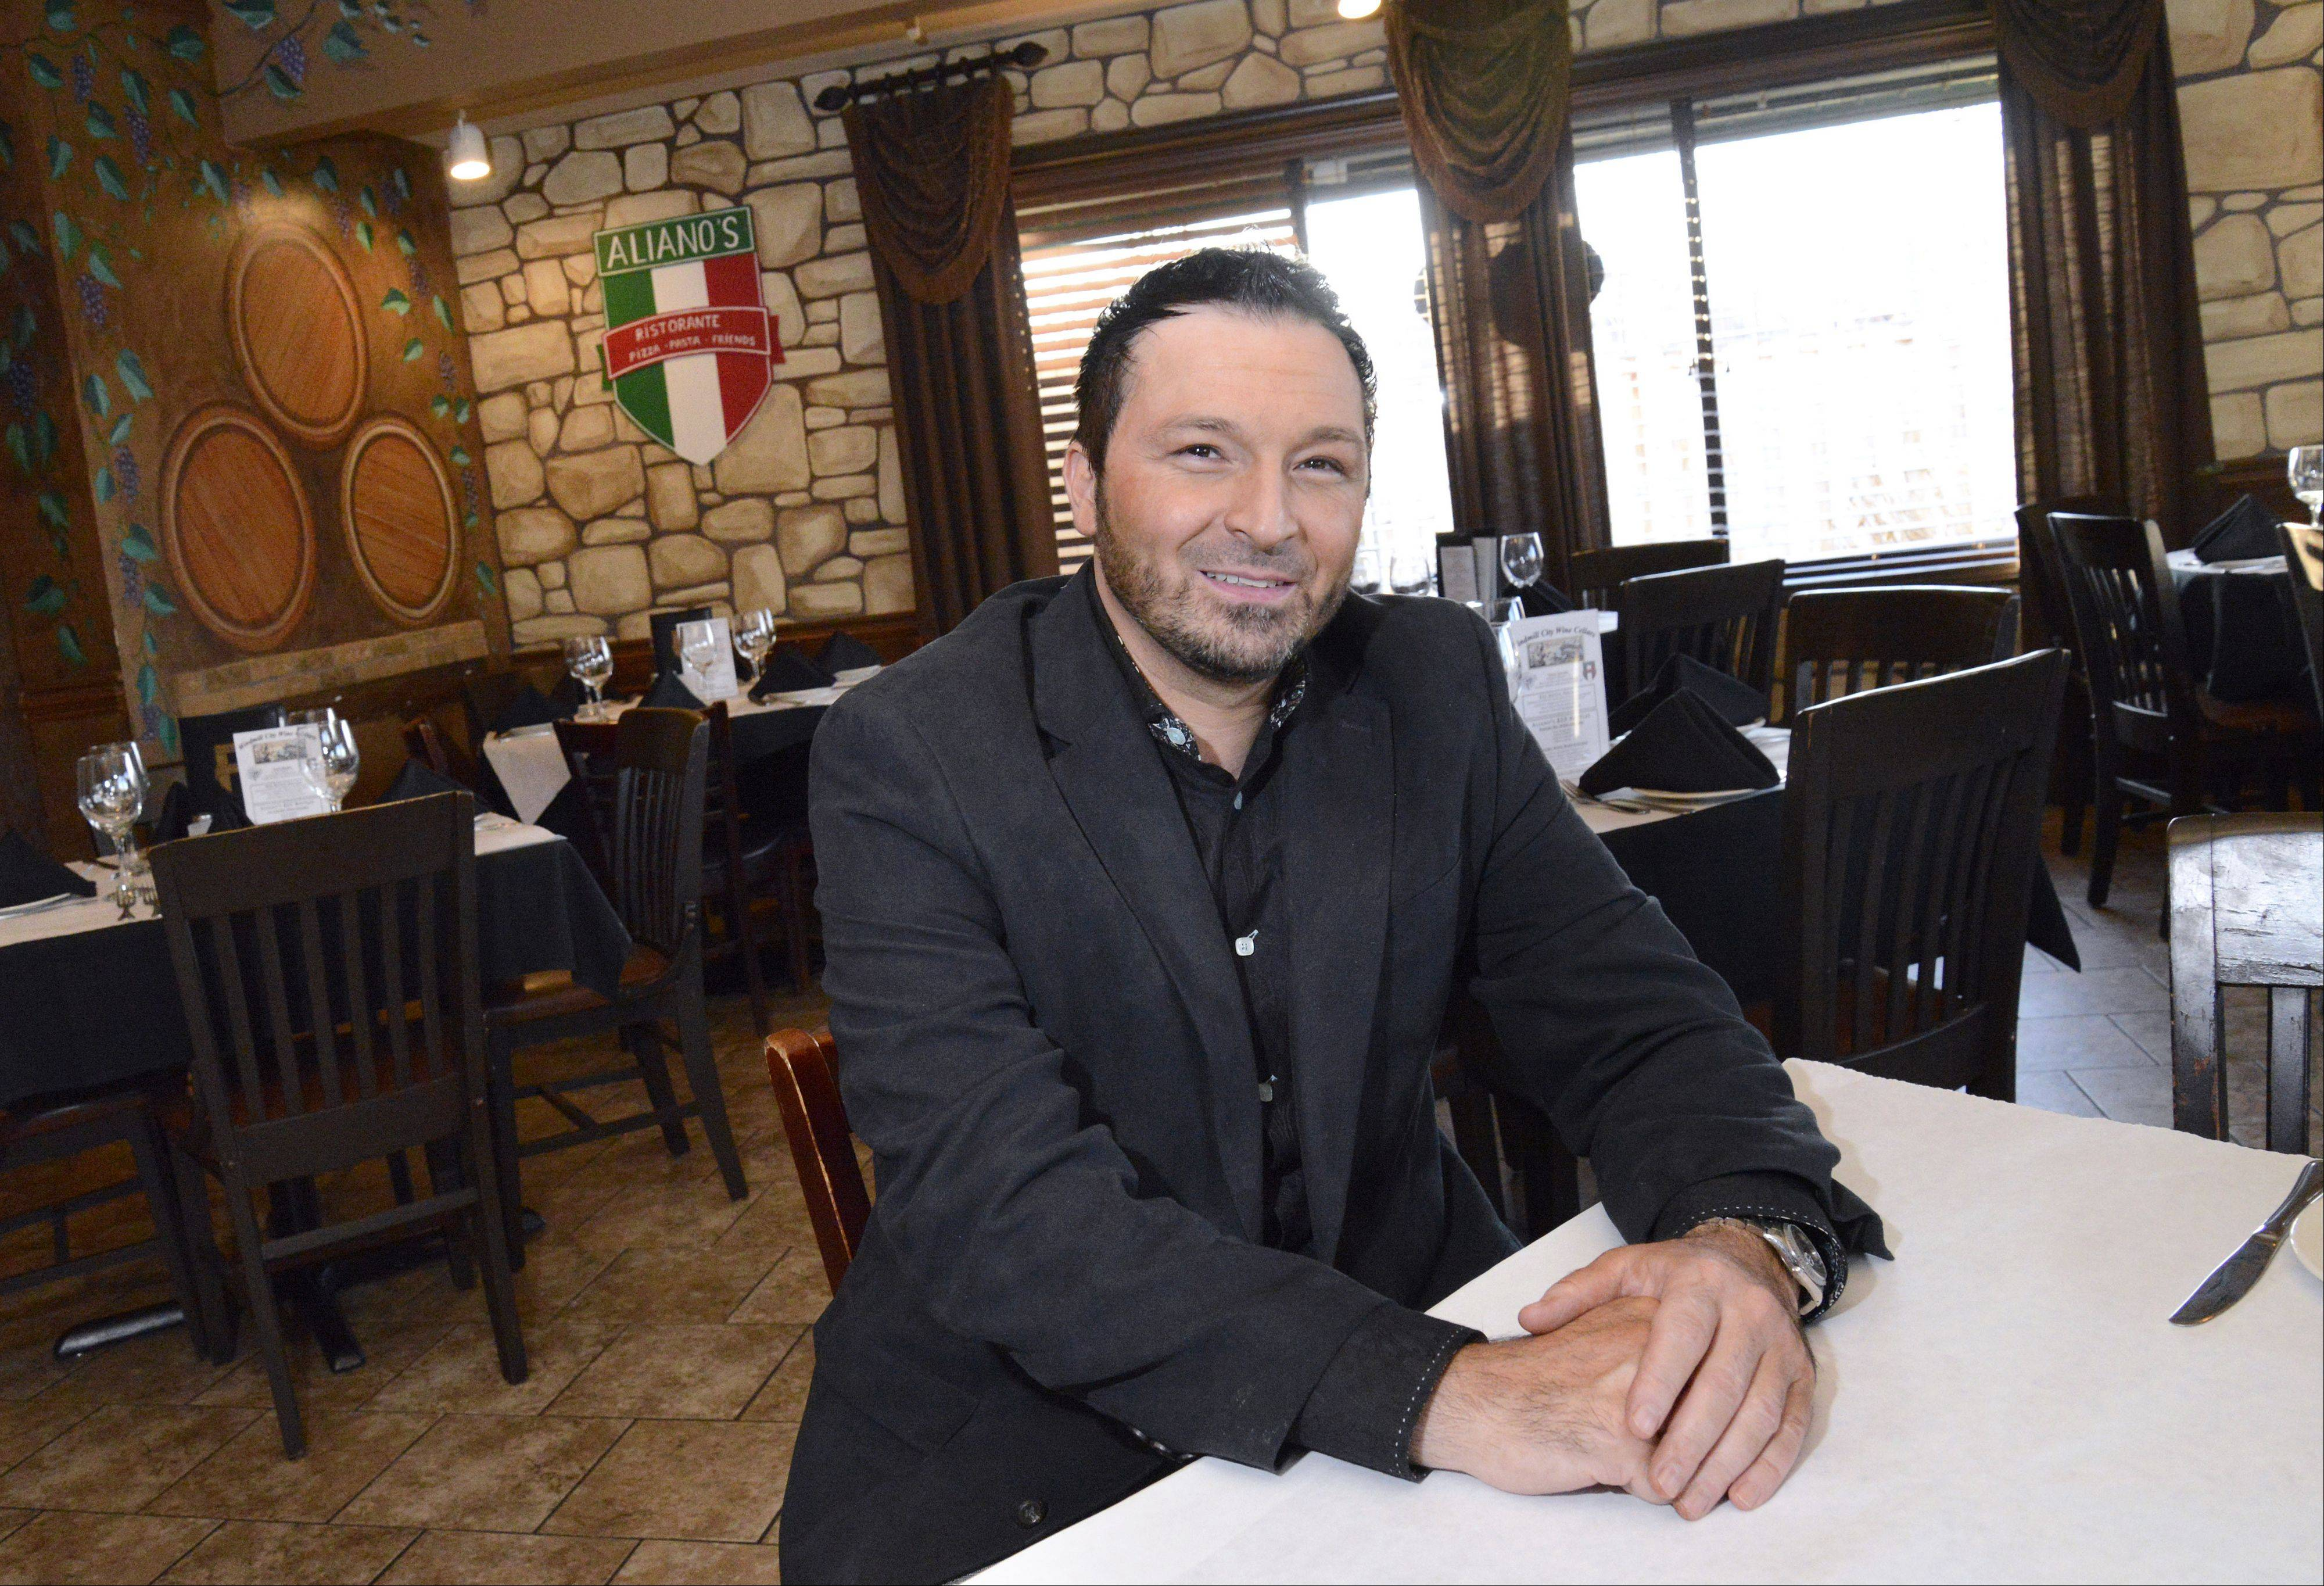 Mario Aliano, owner of Aliano's Ristorante in Batavia, is offering free meals to senior citizens from noon to 3 p.m. Thanksgiving Day. He said it's his way of saying thanks to the community that has supported the restaurant for the nearly two years it's been open.